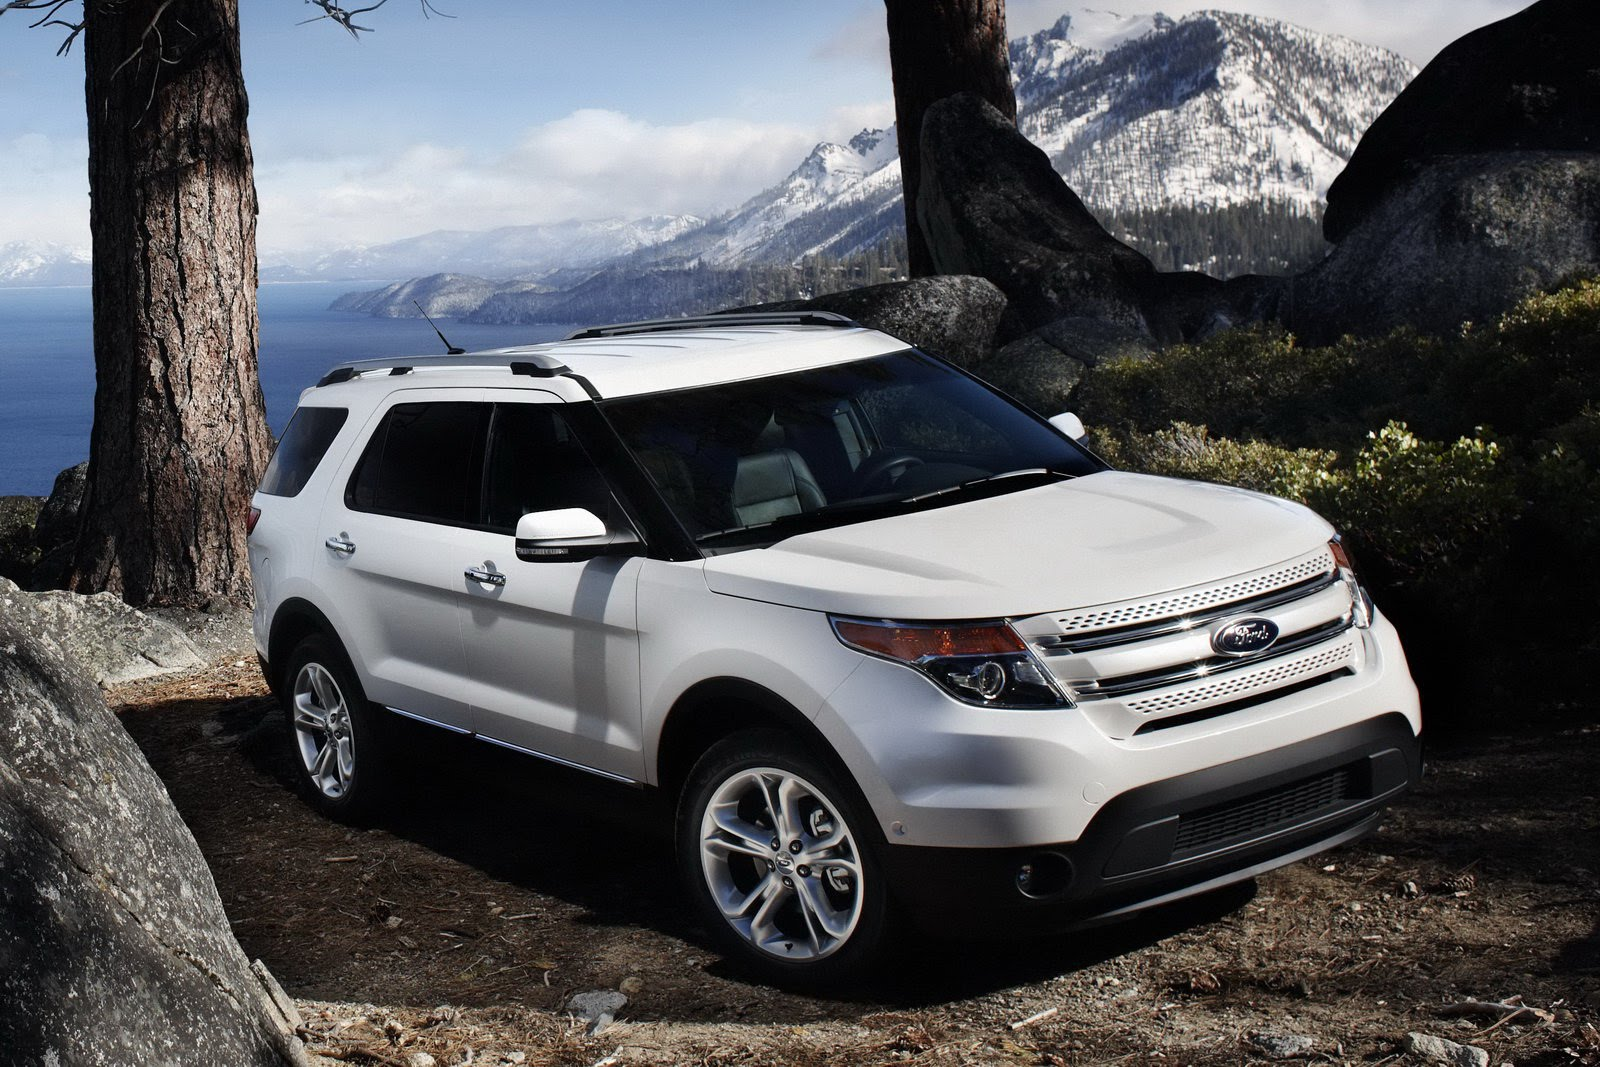 2011 Ford Explorer 4WD Review and Specifications